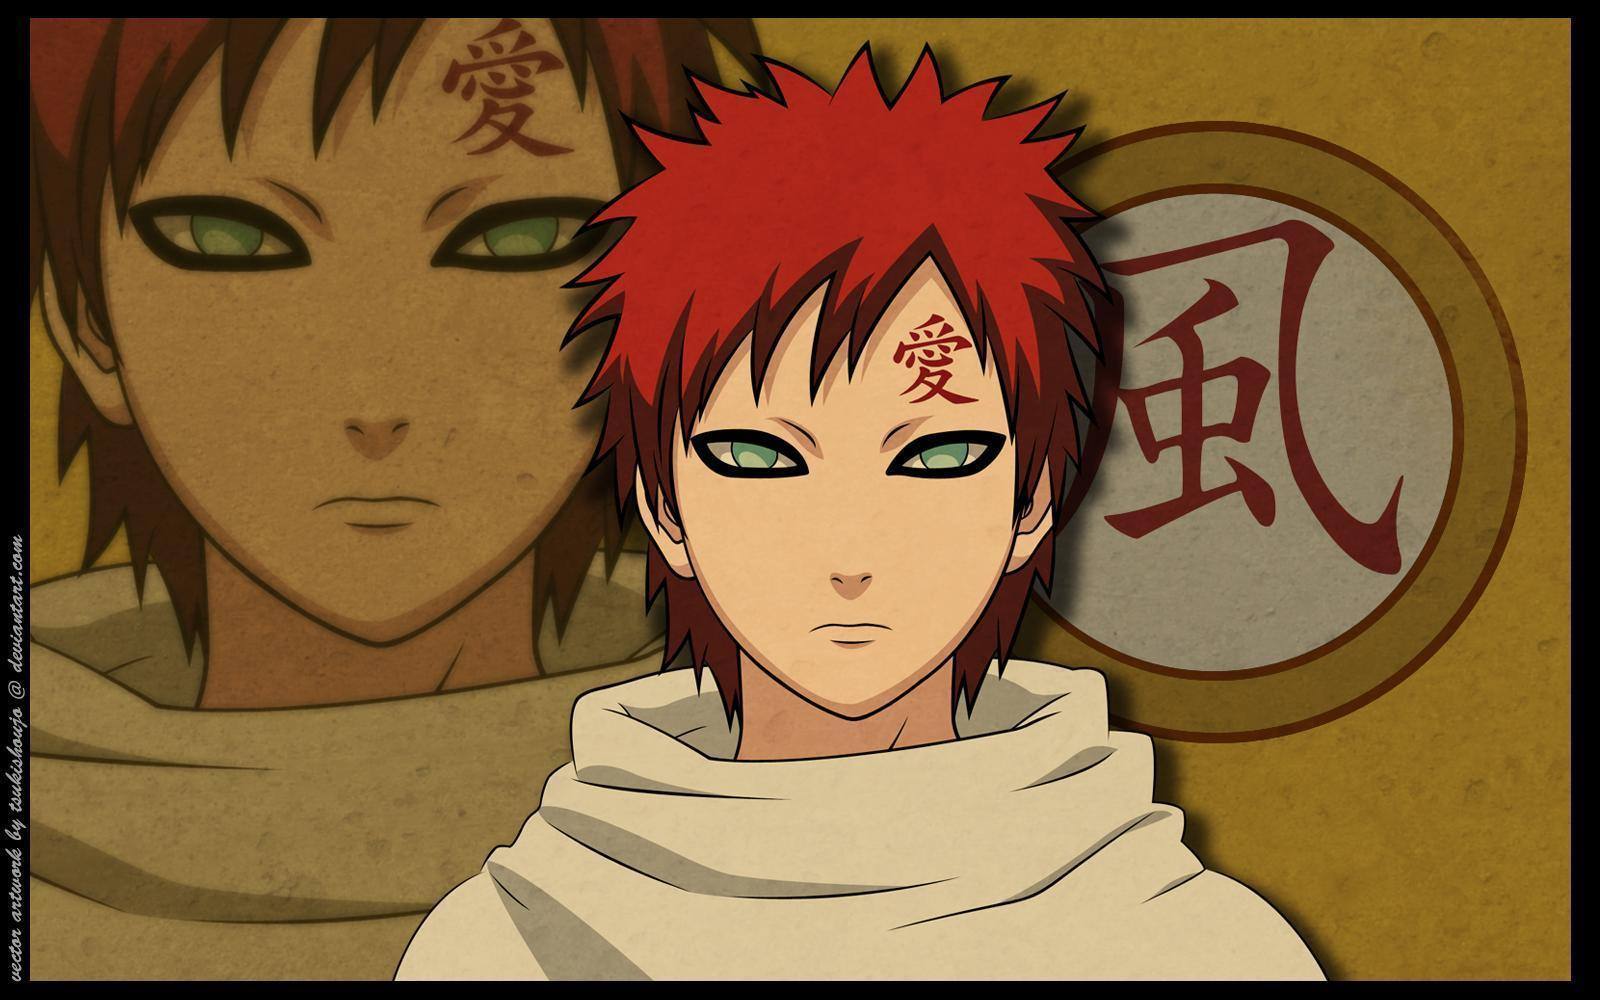 naruto and gaara wallpaper - photo #3